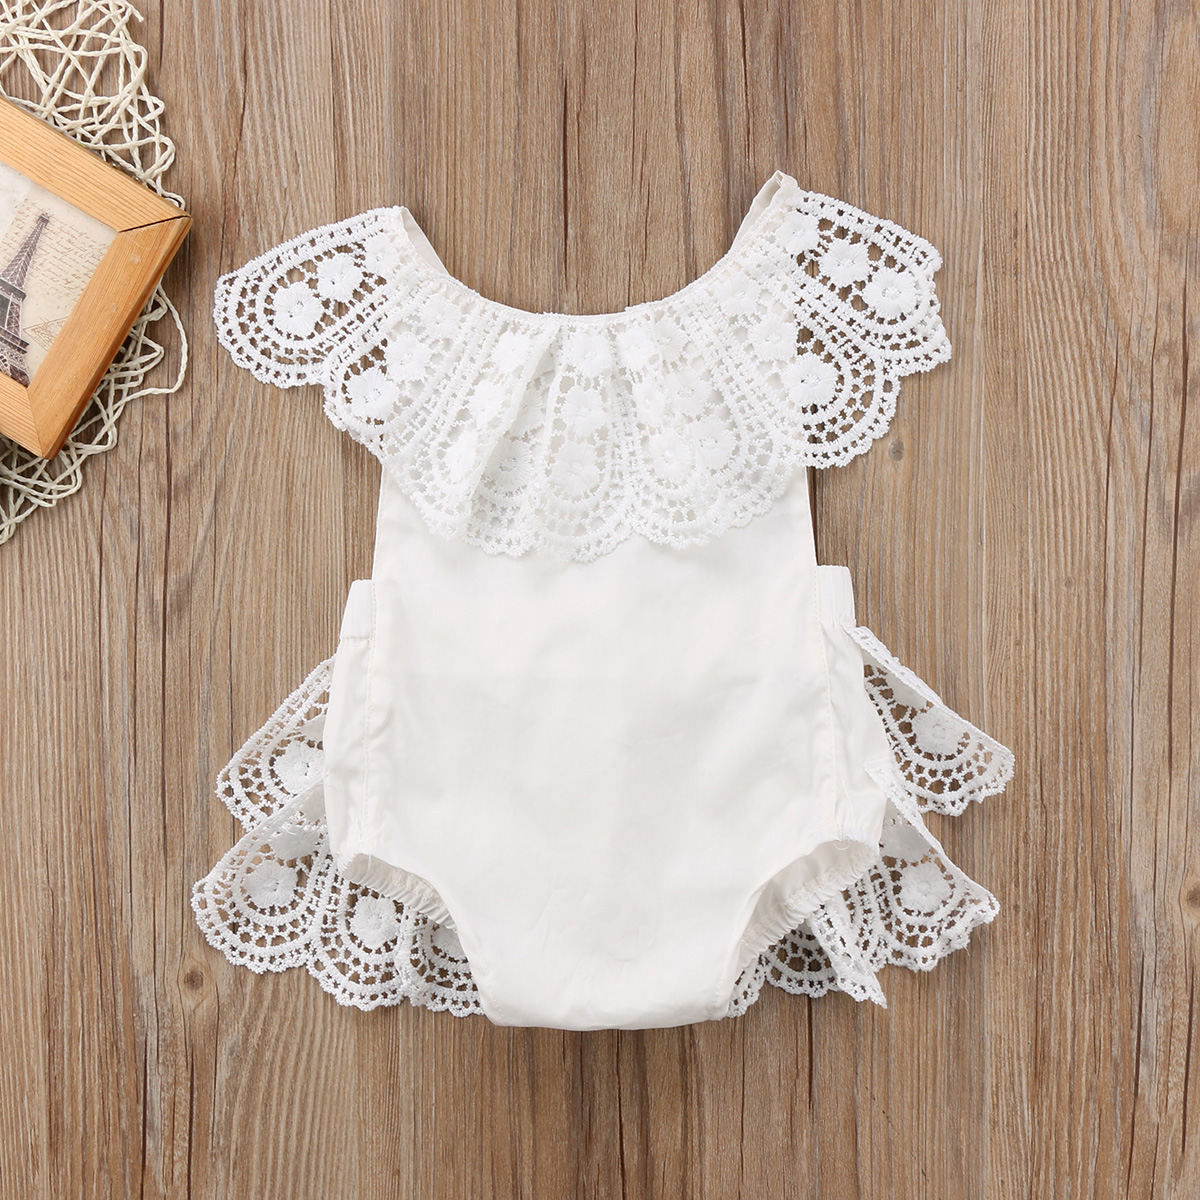 0-24M Newborn Toddler Baby Girl Princess Lace Romper Easter Costume for baby girl 2018 Cute Baby Birthday Clothes white jumpsuit